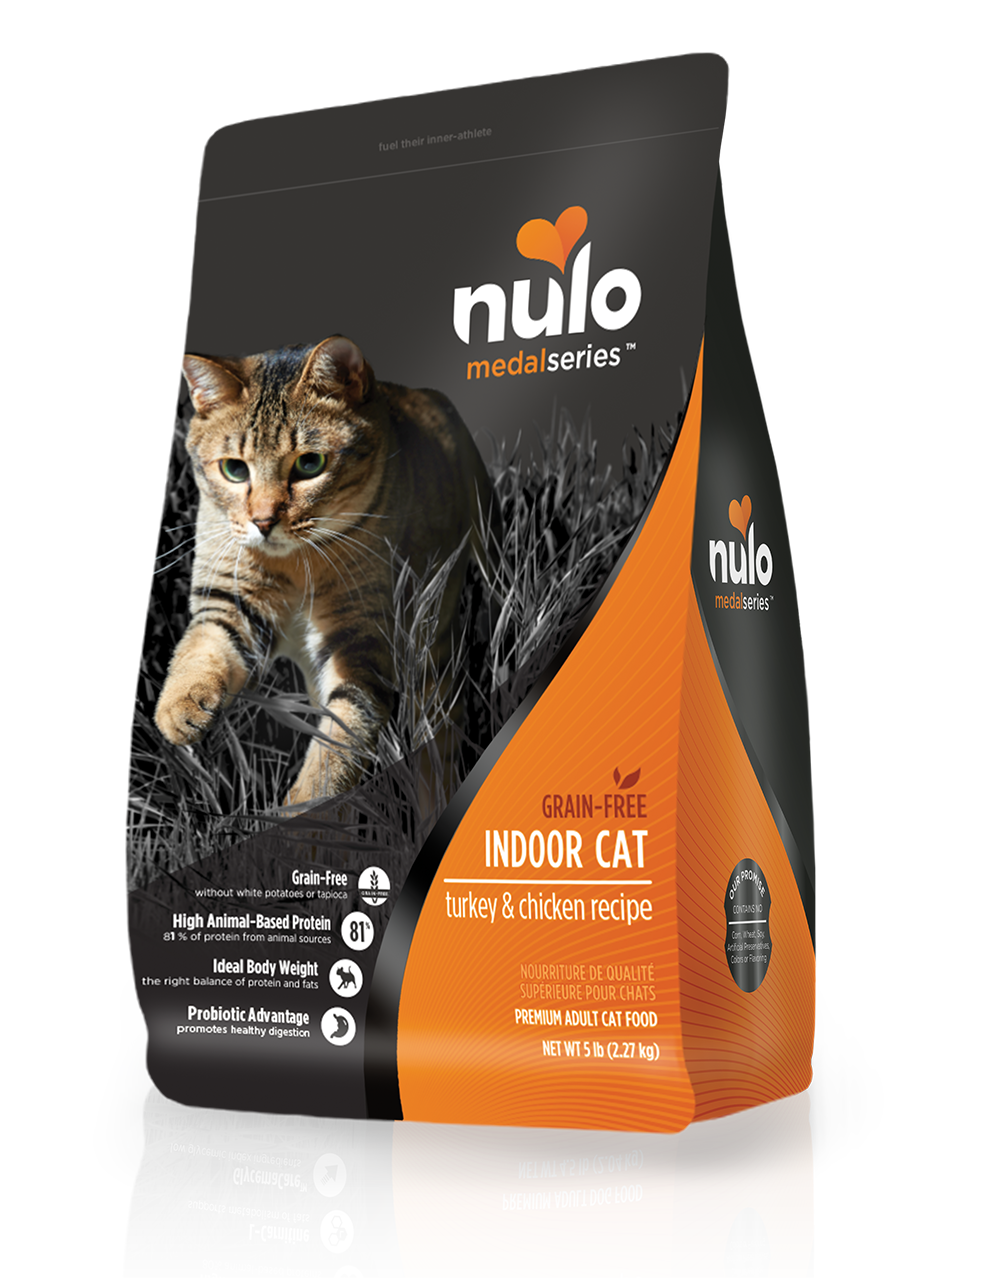 Nulo medalseries cat indoor turkey chicken